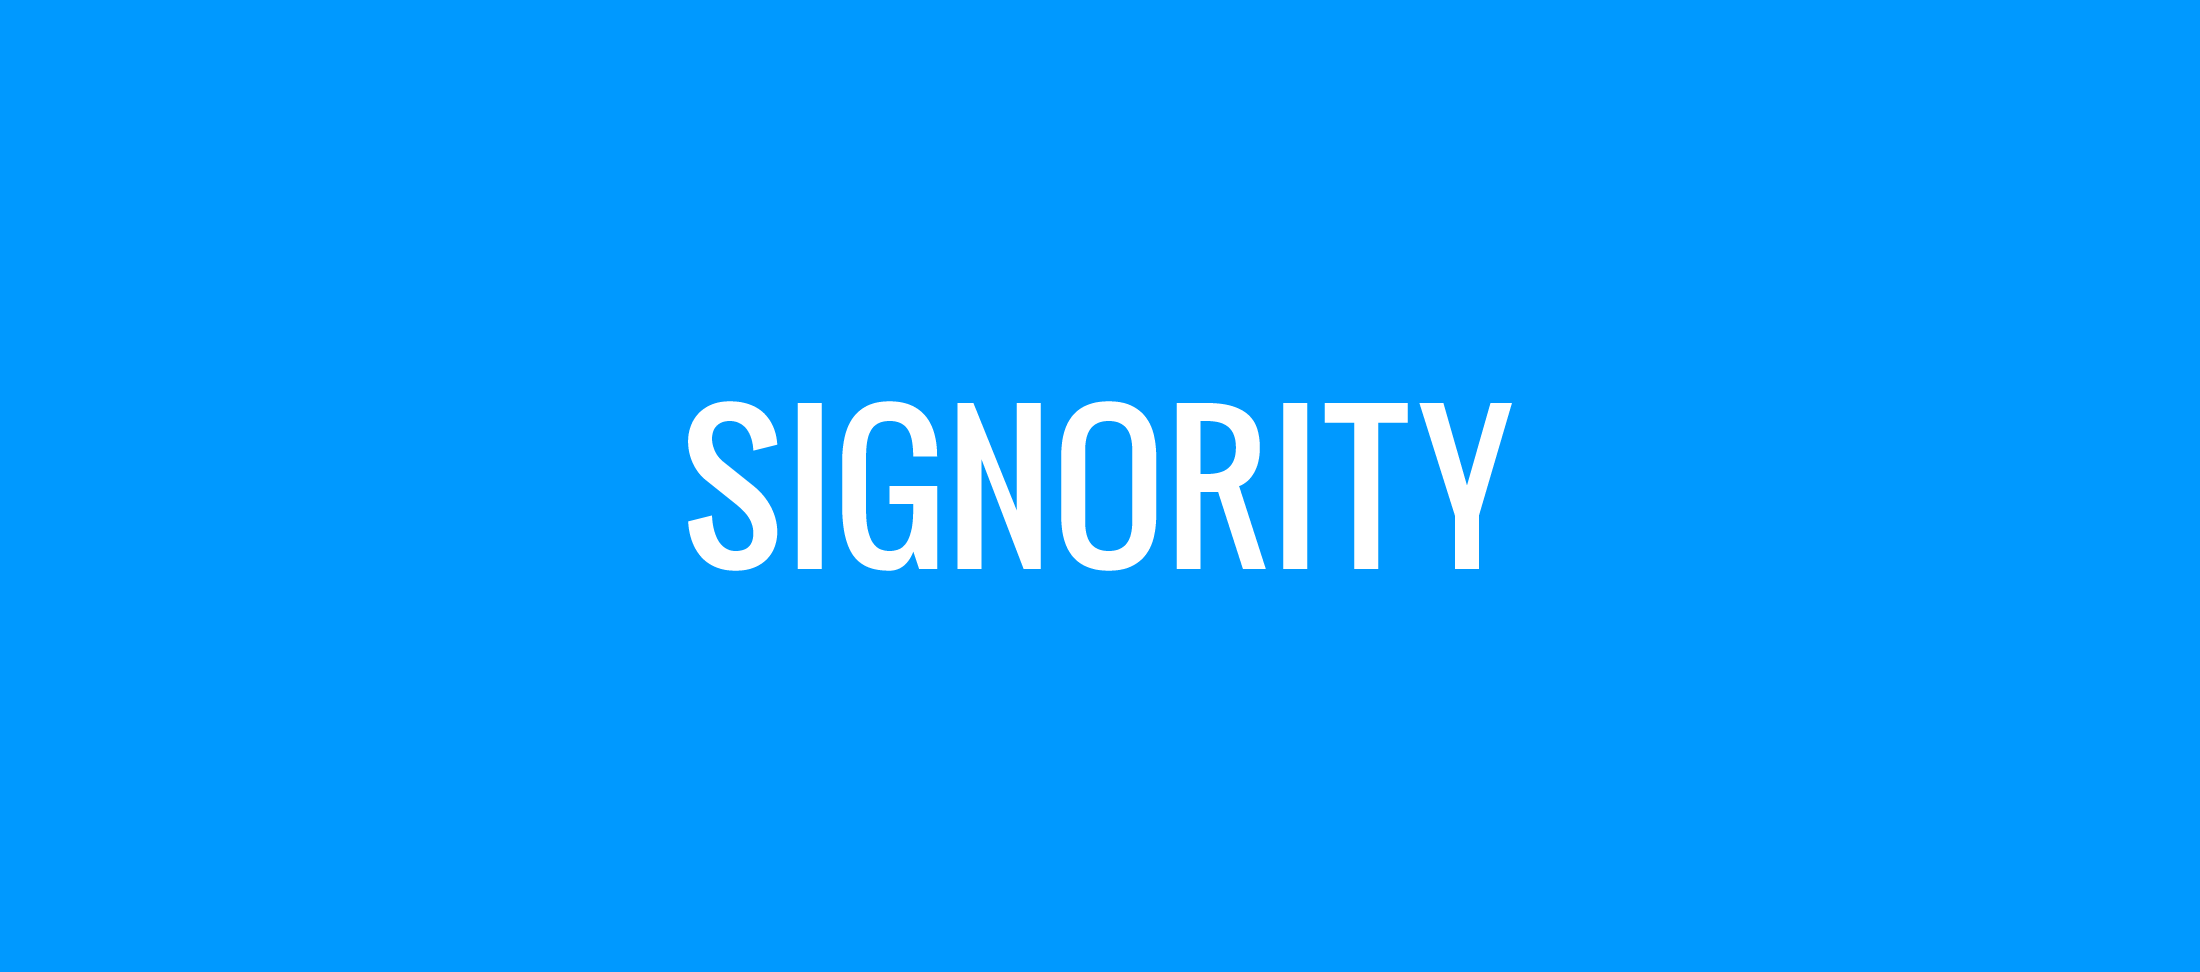 Signority Logo White on Blue background